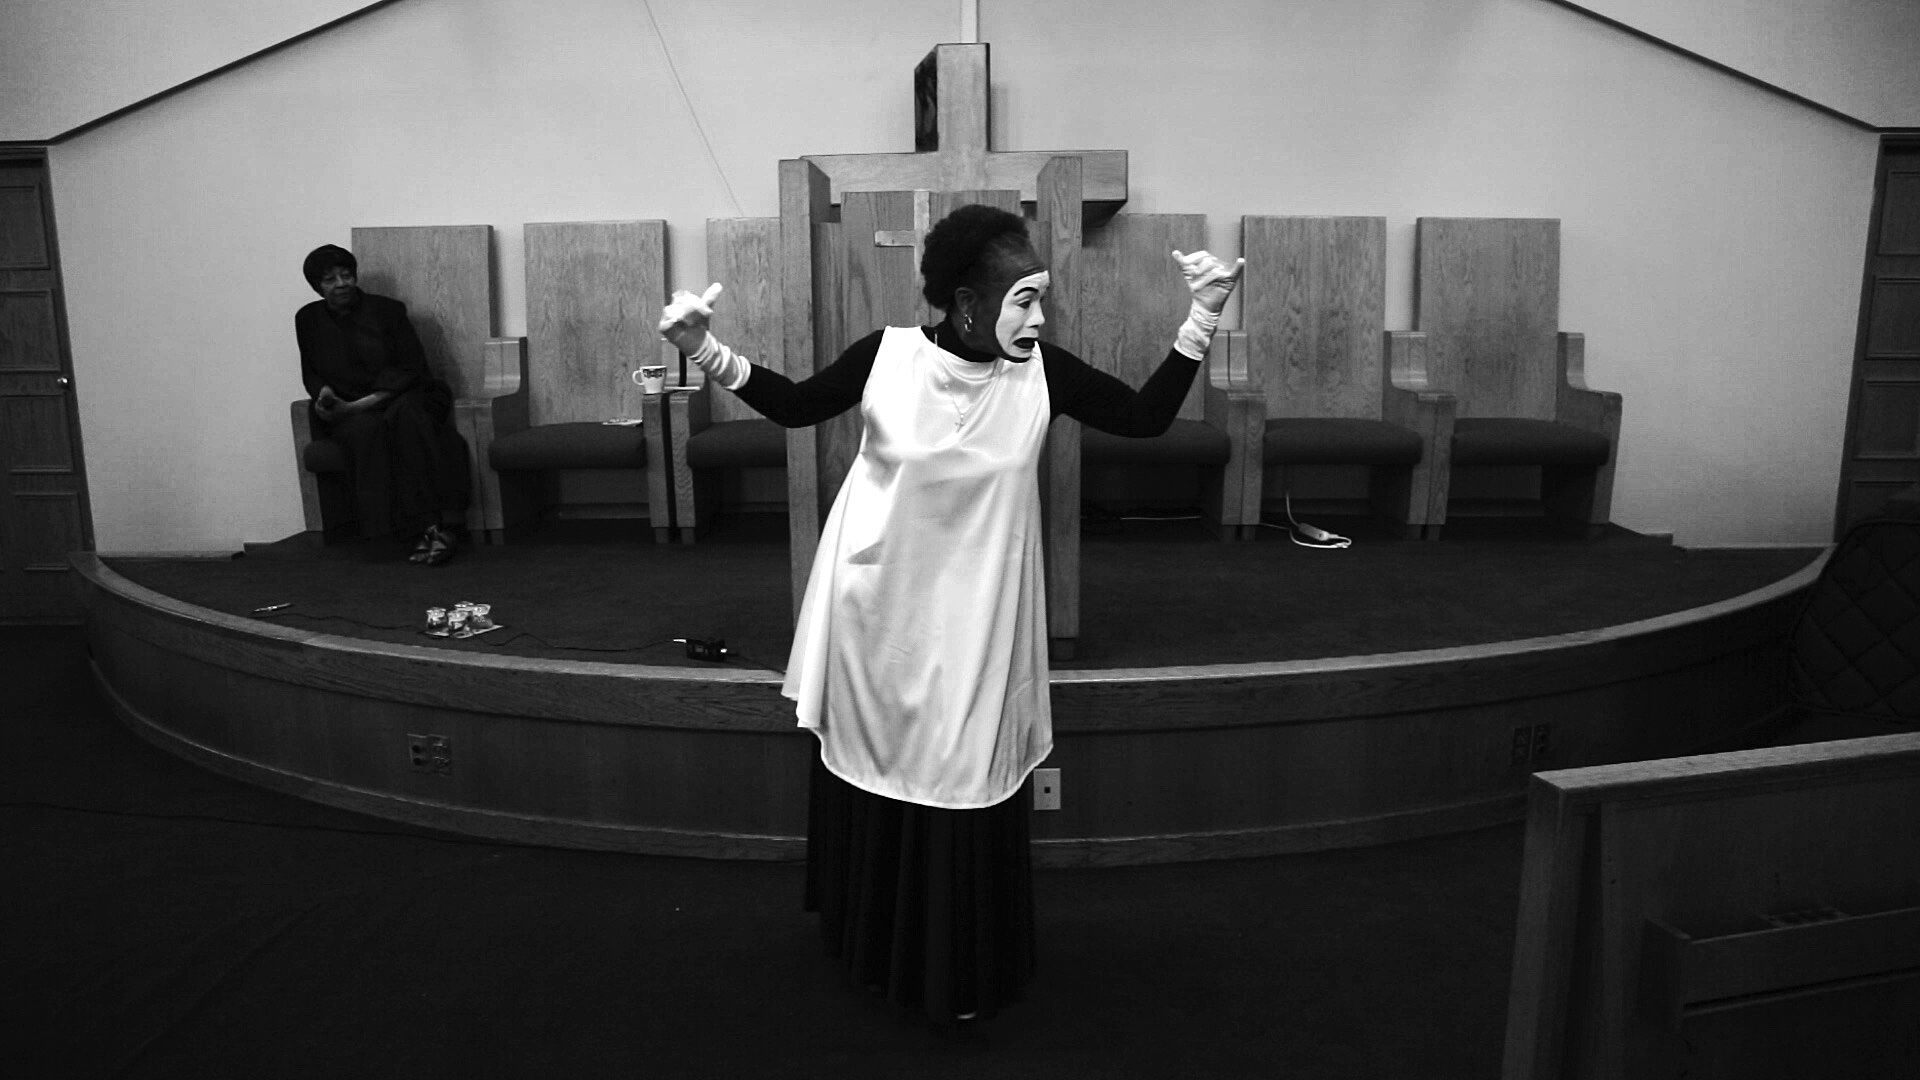 A black-and-white still of a woman in a white robe and mask in front of a  platform featuring Christian crosses.